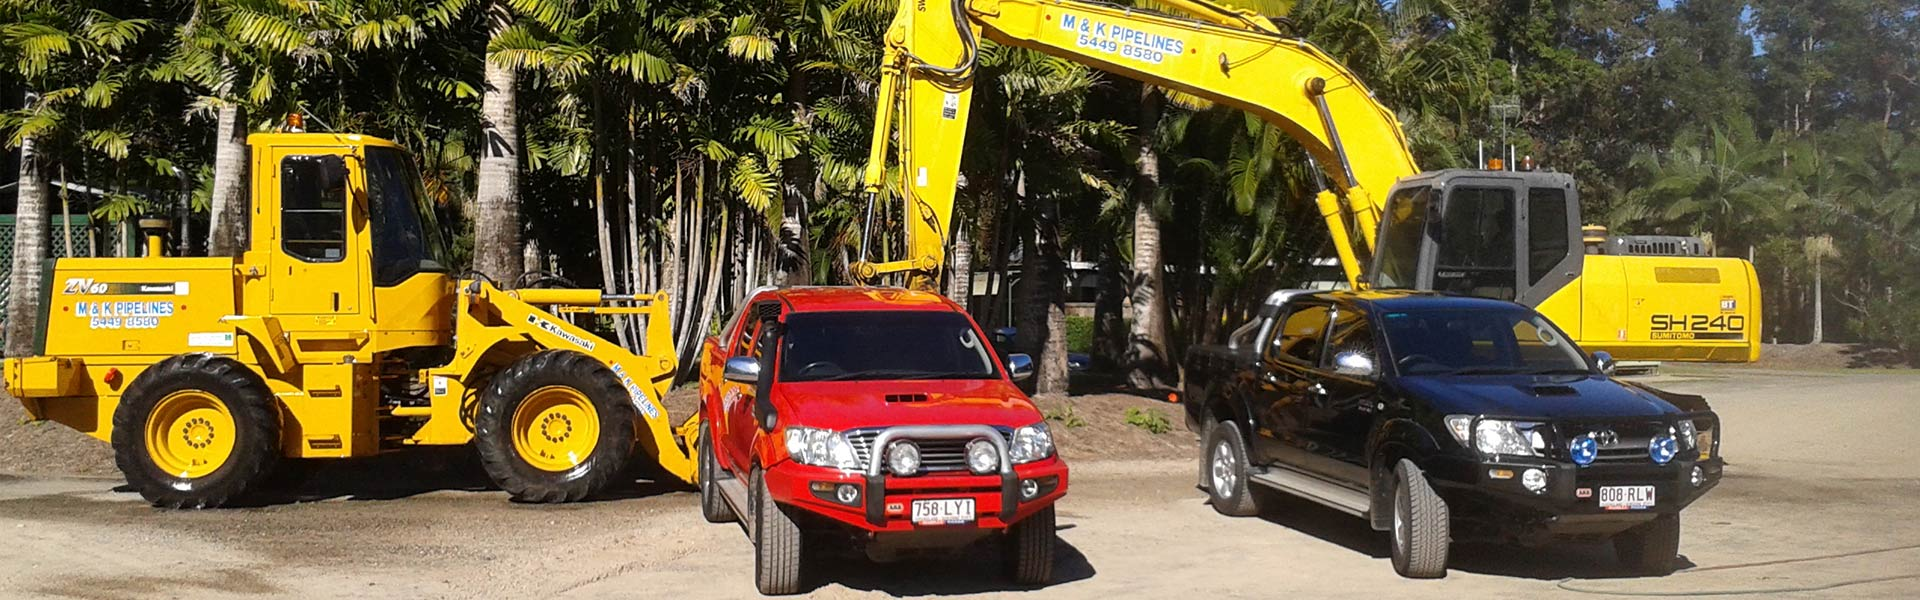 m and k pipelines pty ltd excavator and our vehicle fleet